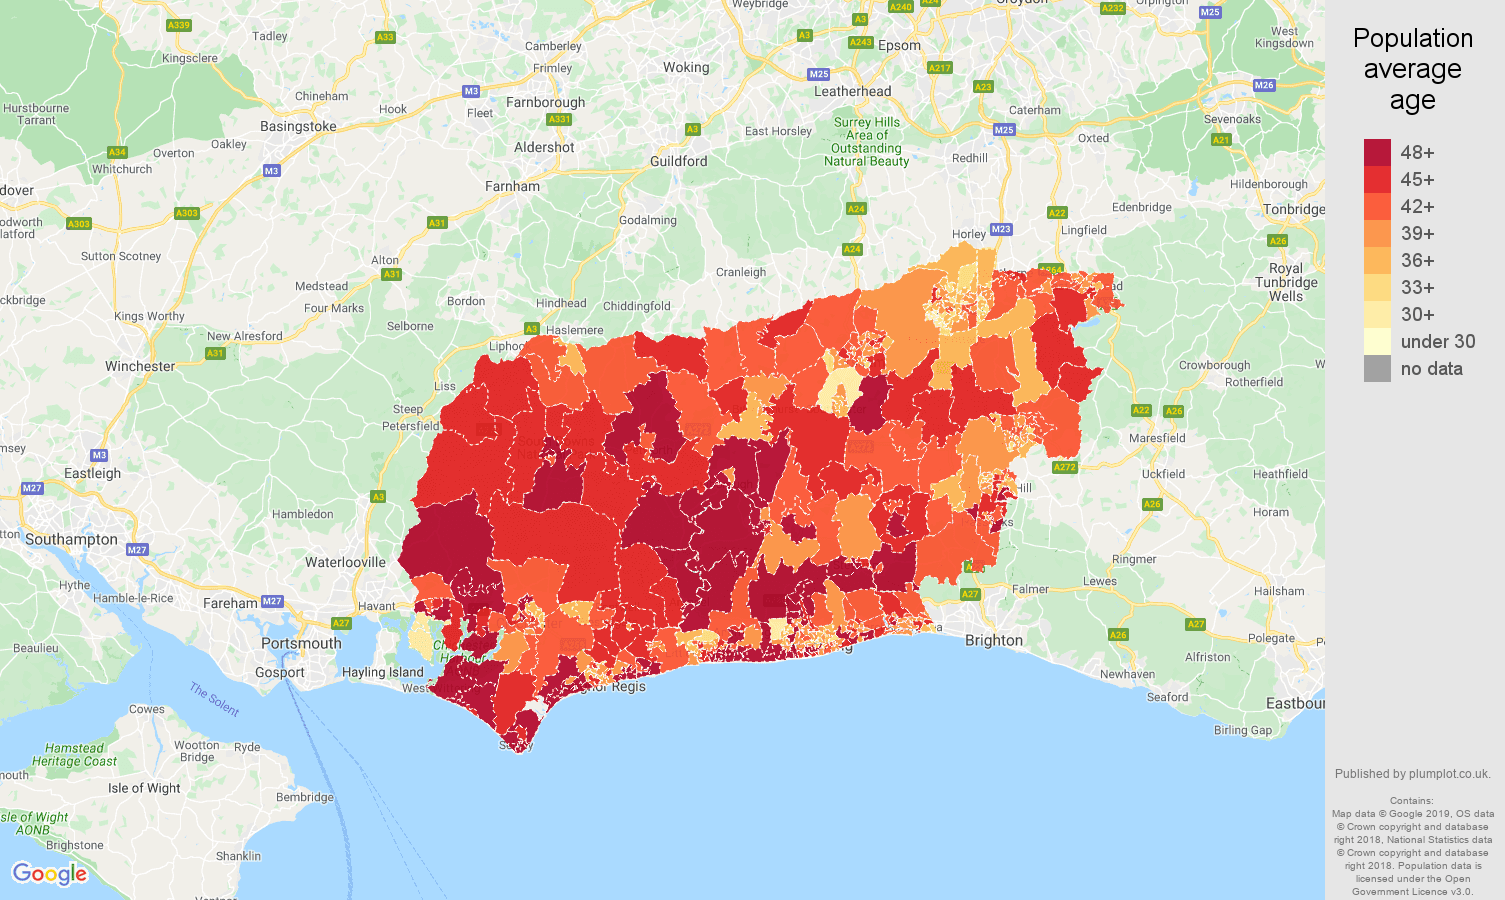 West Sussex population average age map